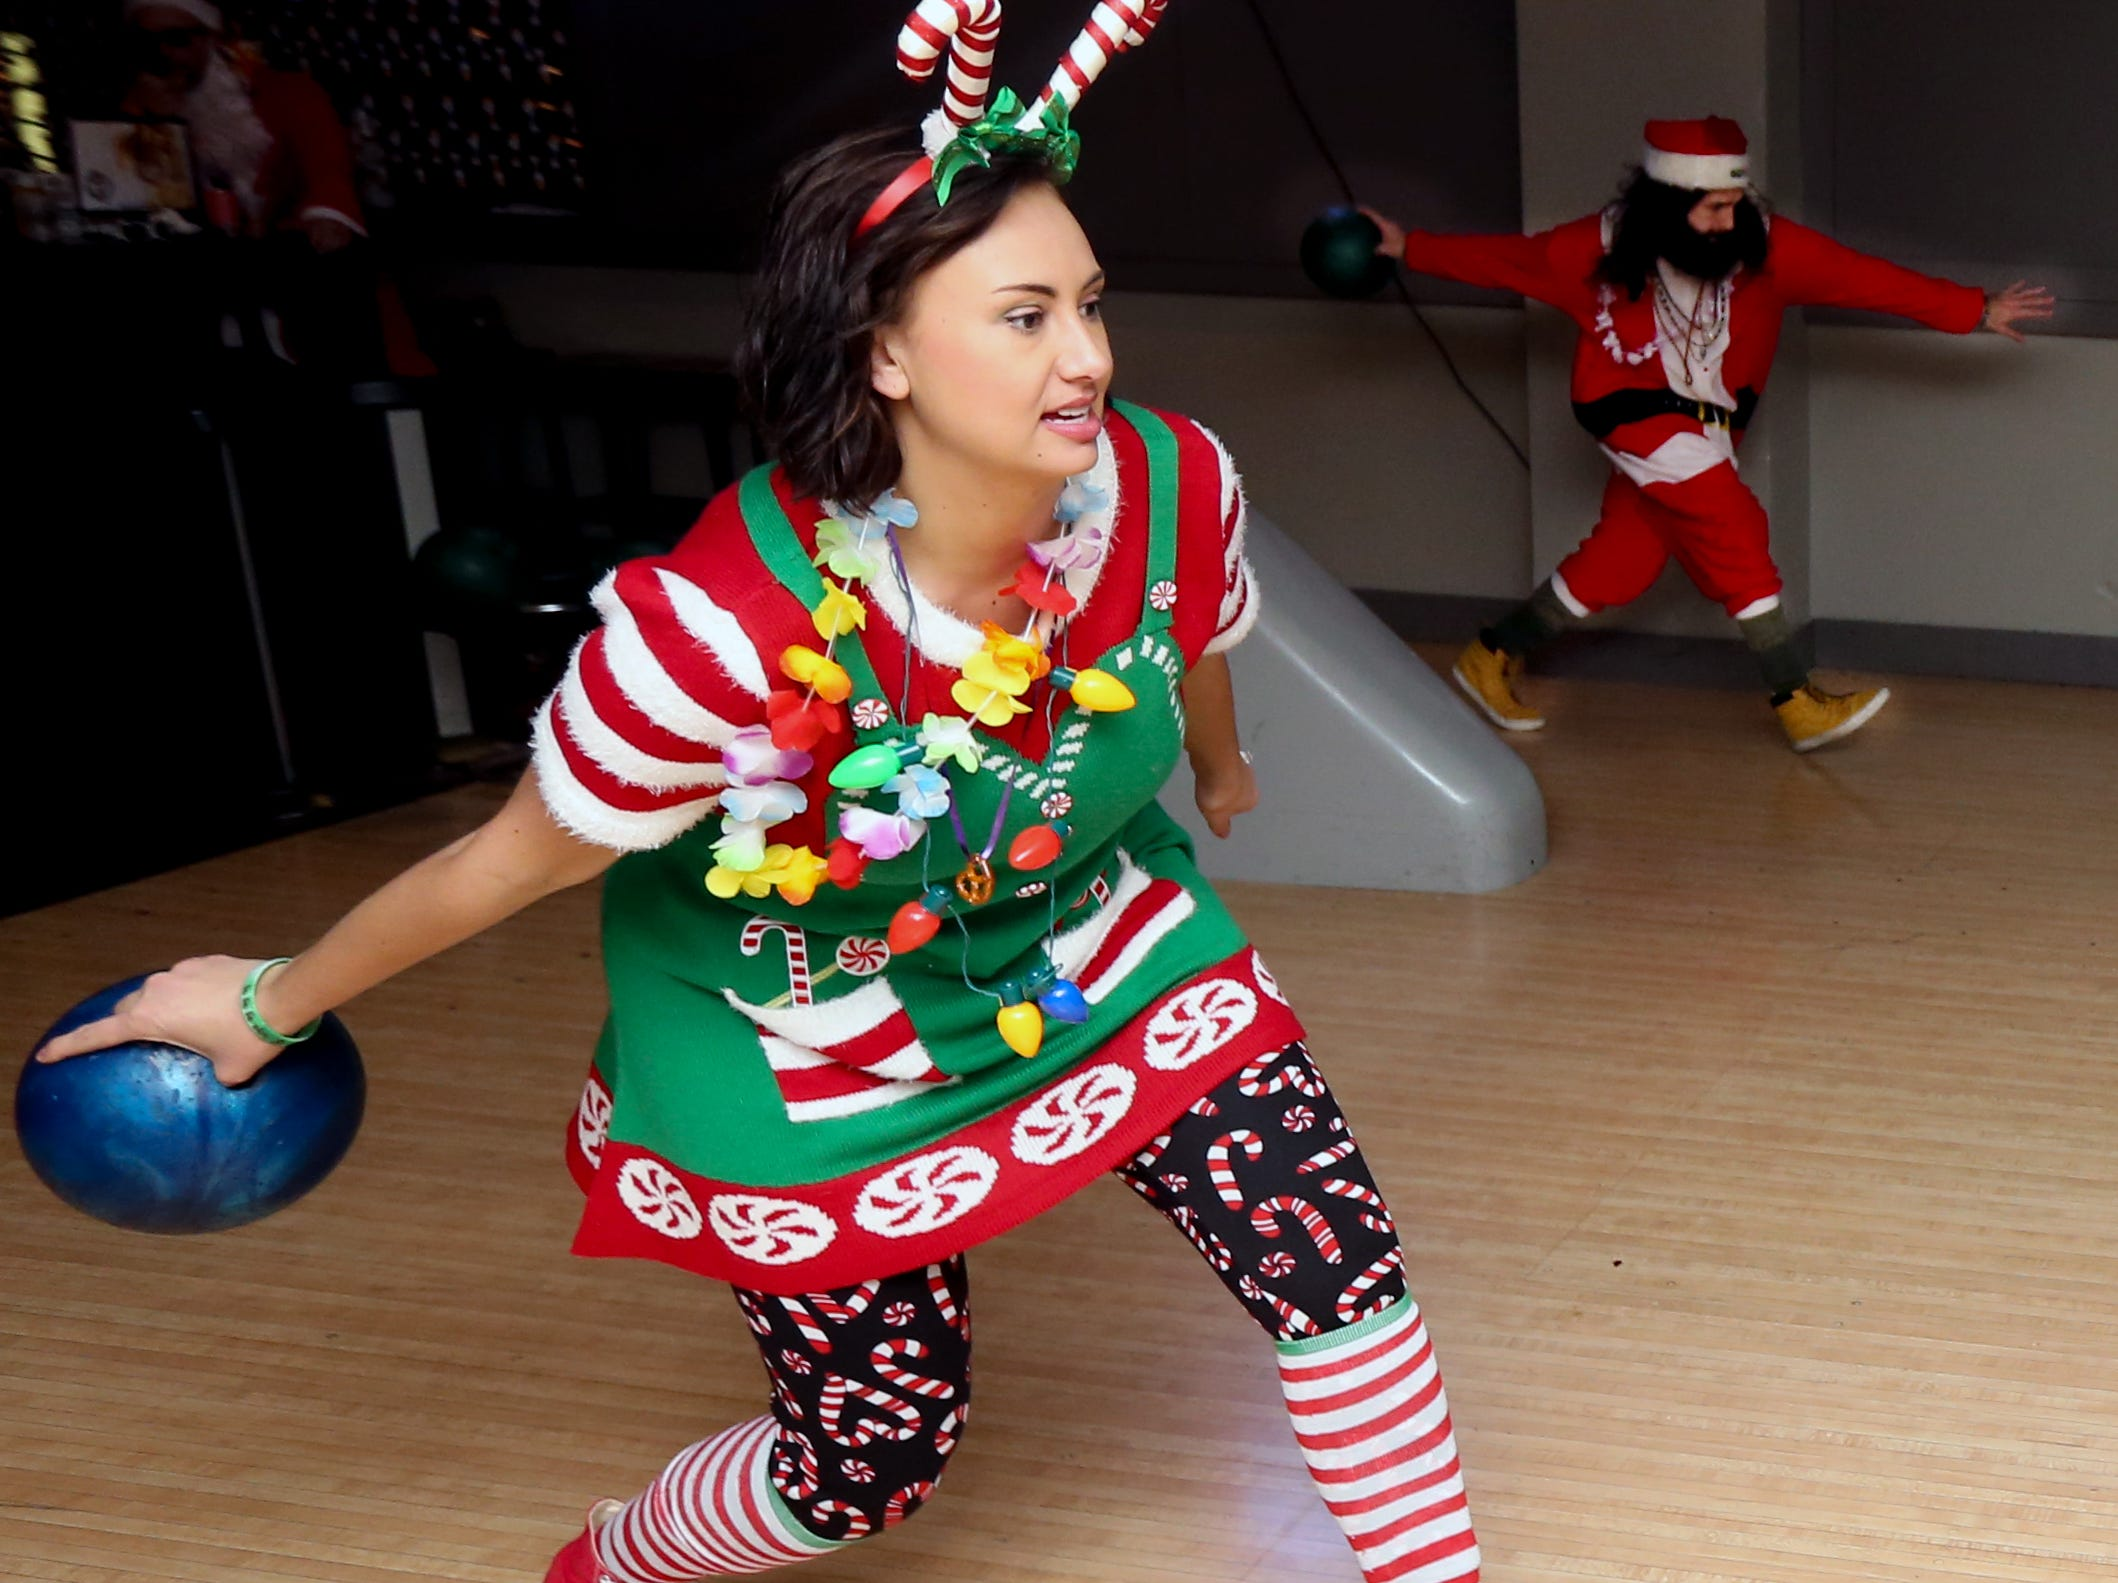 Kelcie Perez bowls at the Sports & Social Club as one of the stops along the SantaCon trail. Dec. 8, 2018